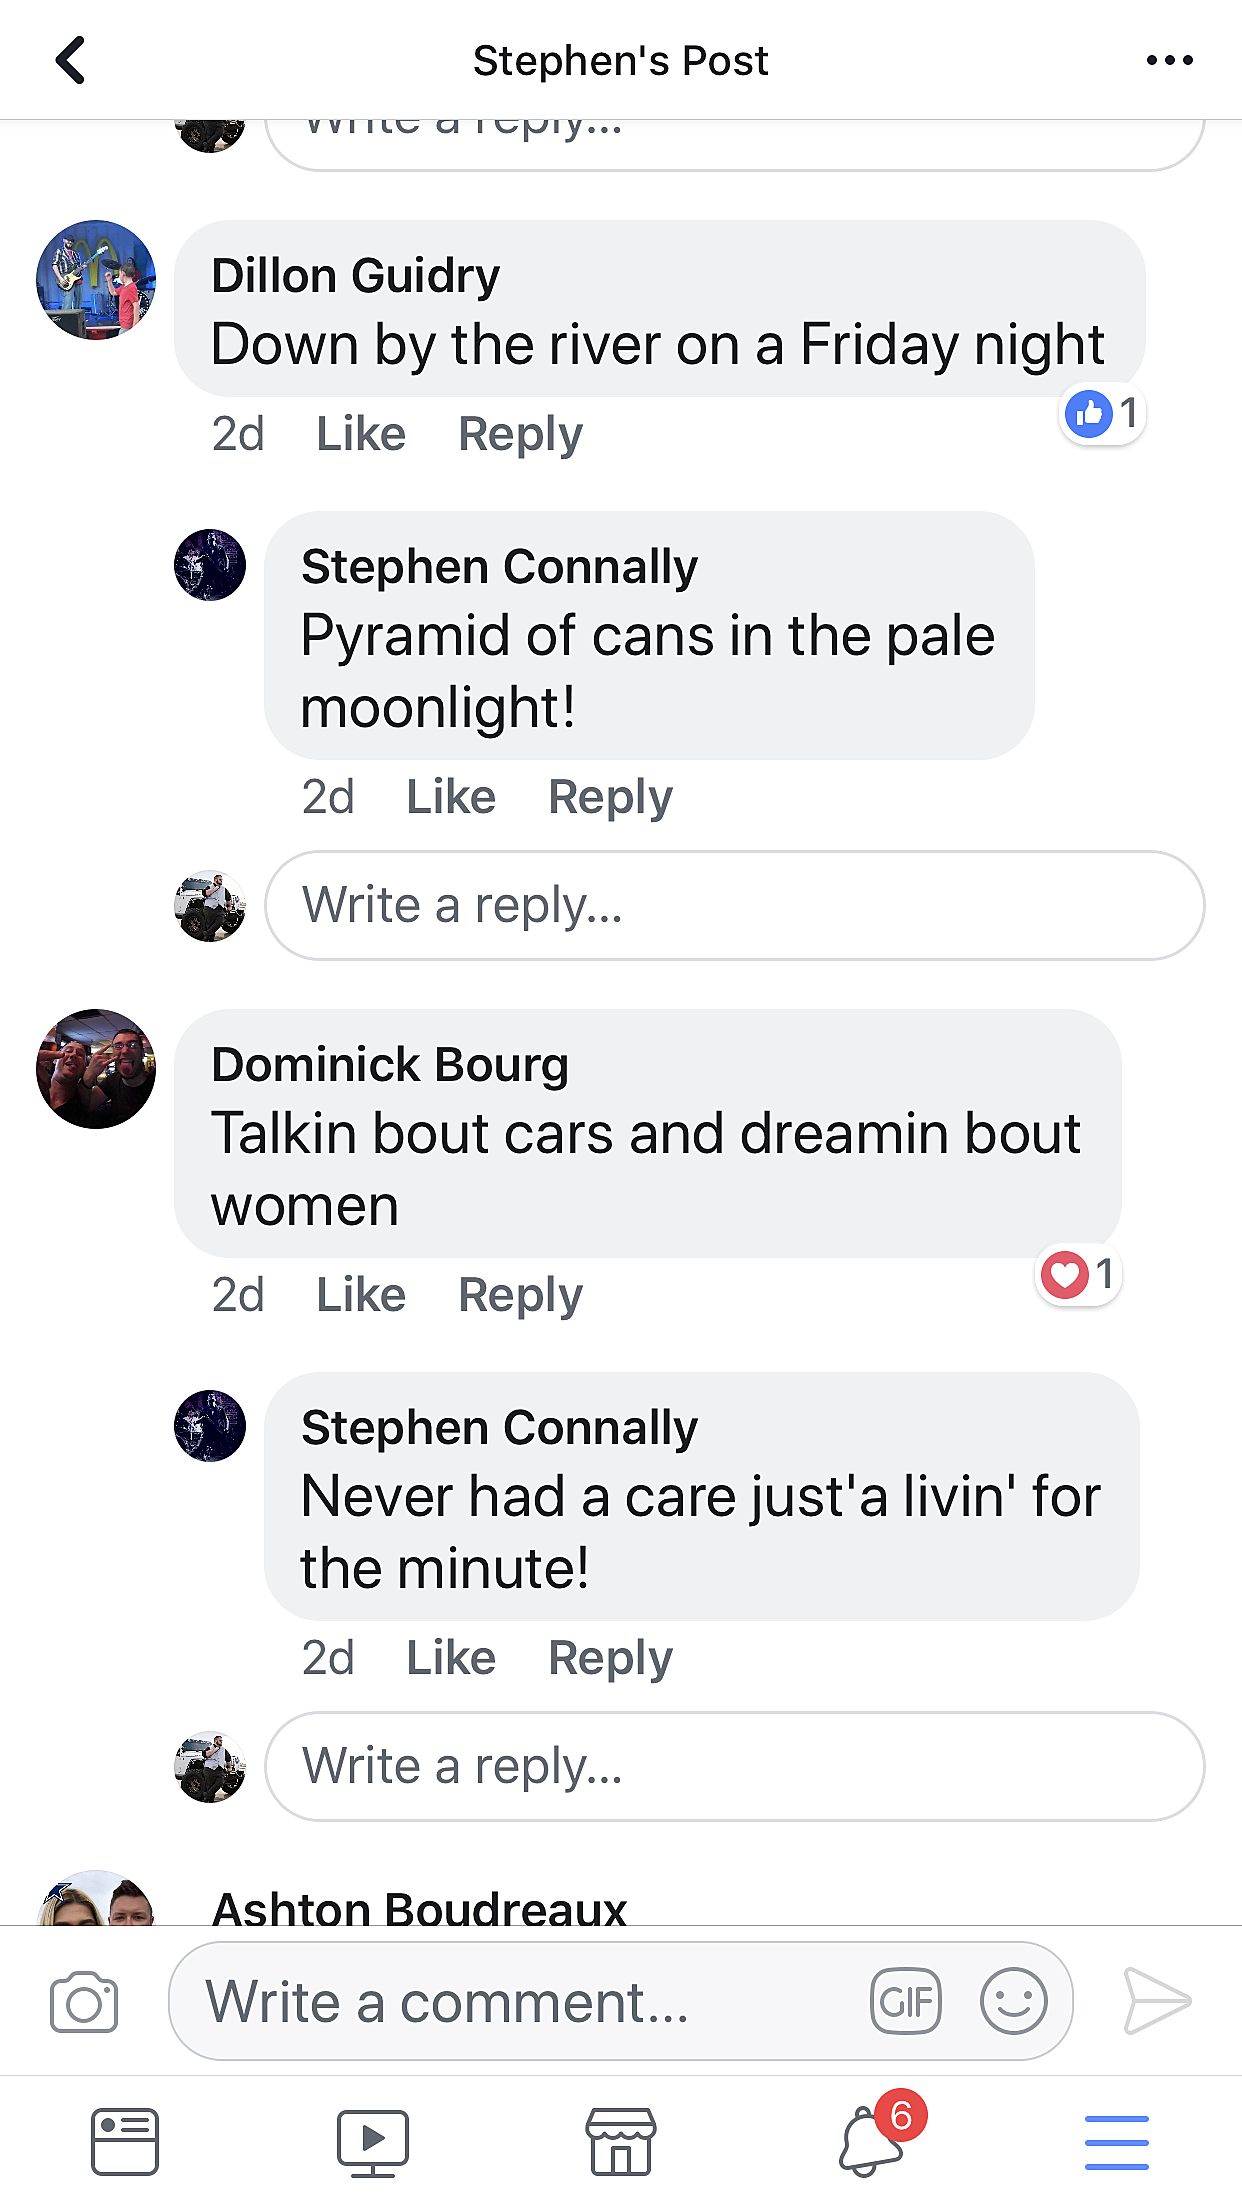 Facebook Post Starts as a Funny Joke, Replies End Up Singing the